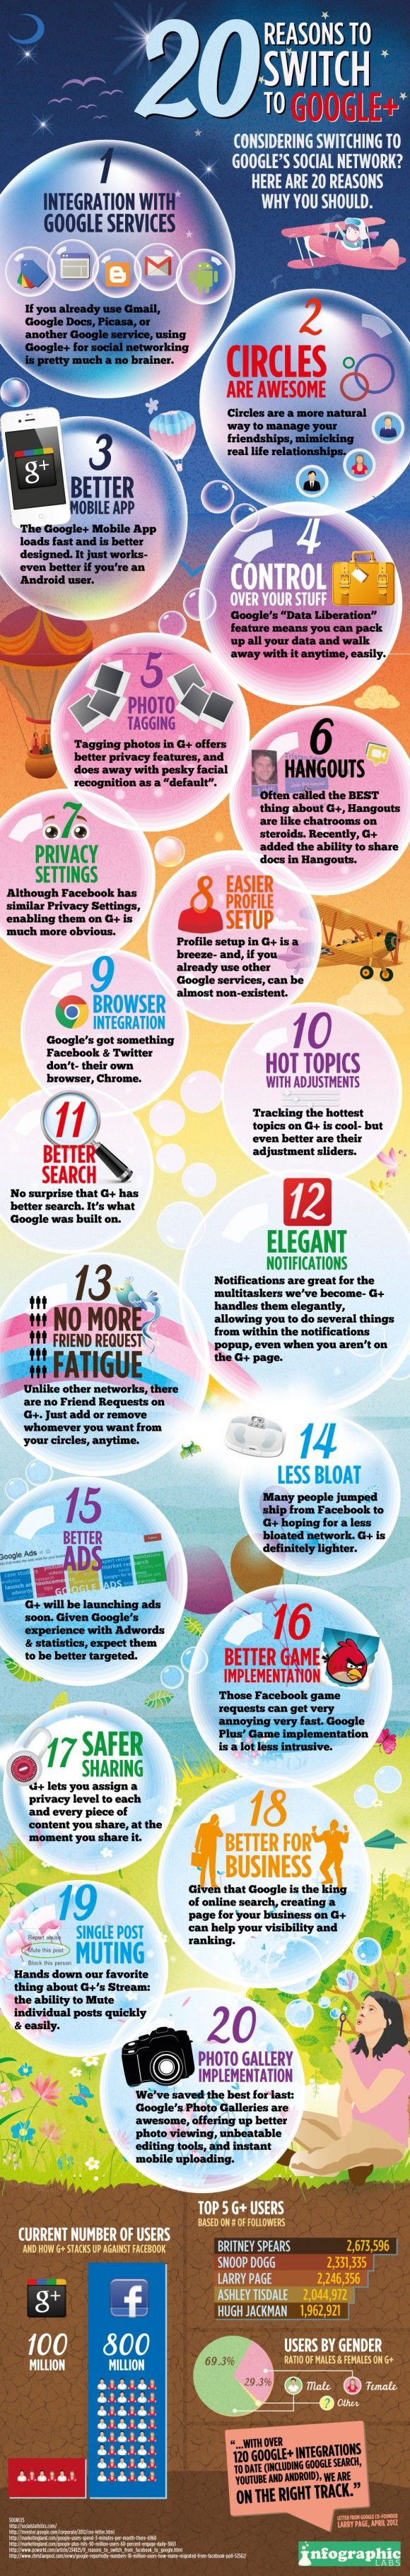 20 Reasons to Switch to Google Plus - Google Plus' 100 million users may pale considerably in comparison to Facebook's 800 million (!) but, as is illustrated by this infographic design by Infographic Labs, there are plenty of reasons to check out what could be the next big thing in social networking.